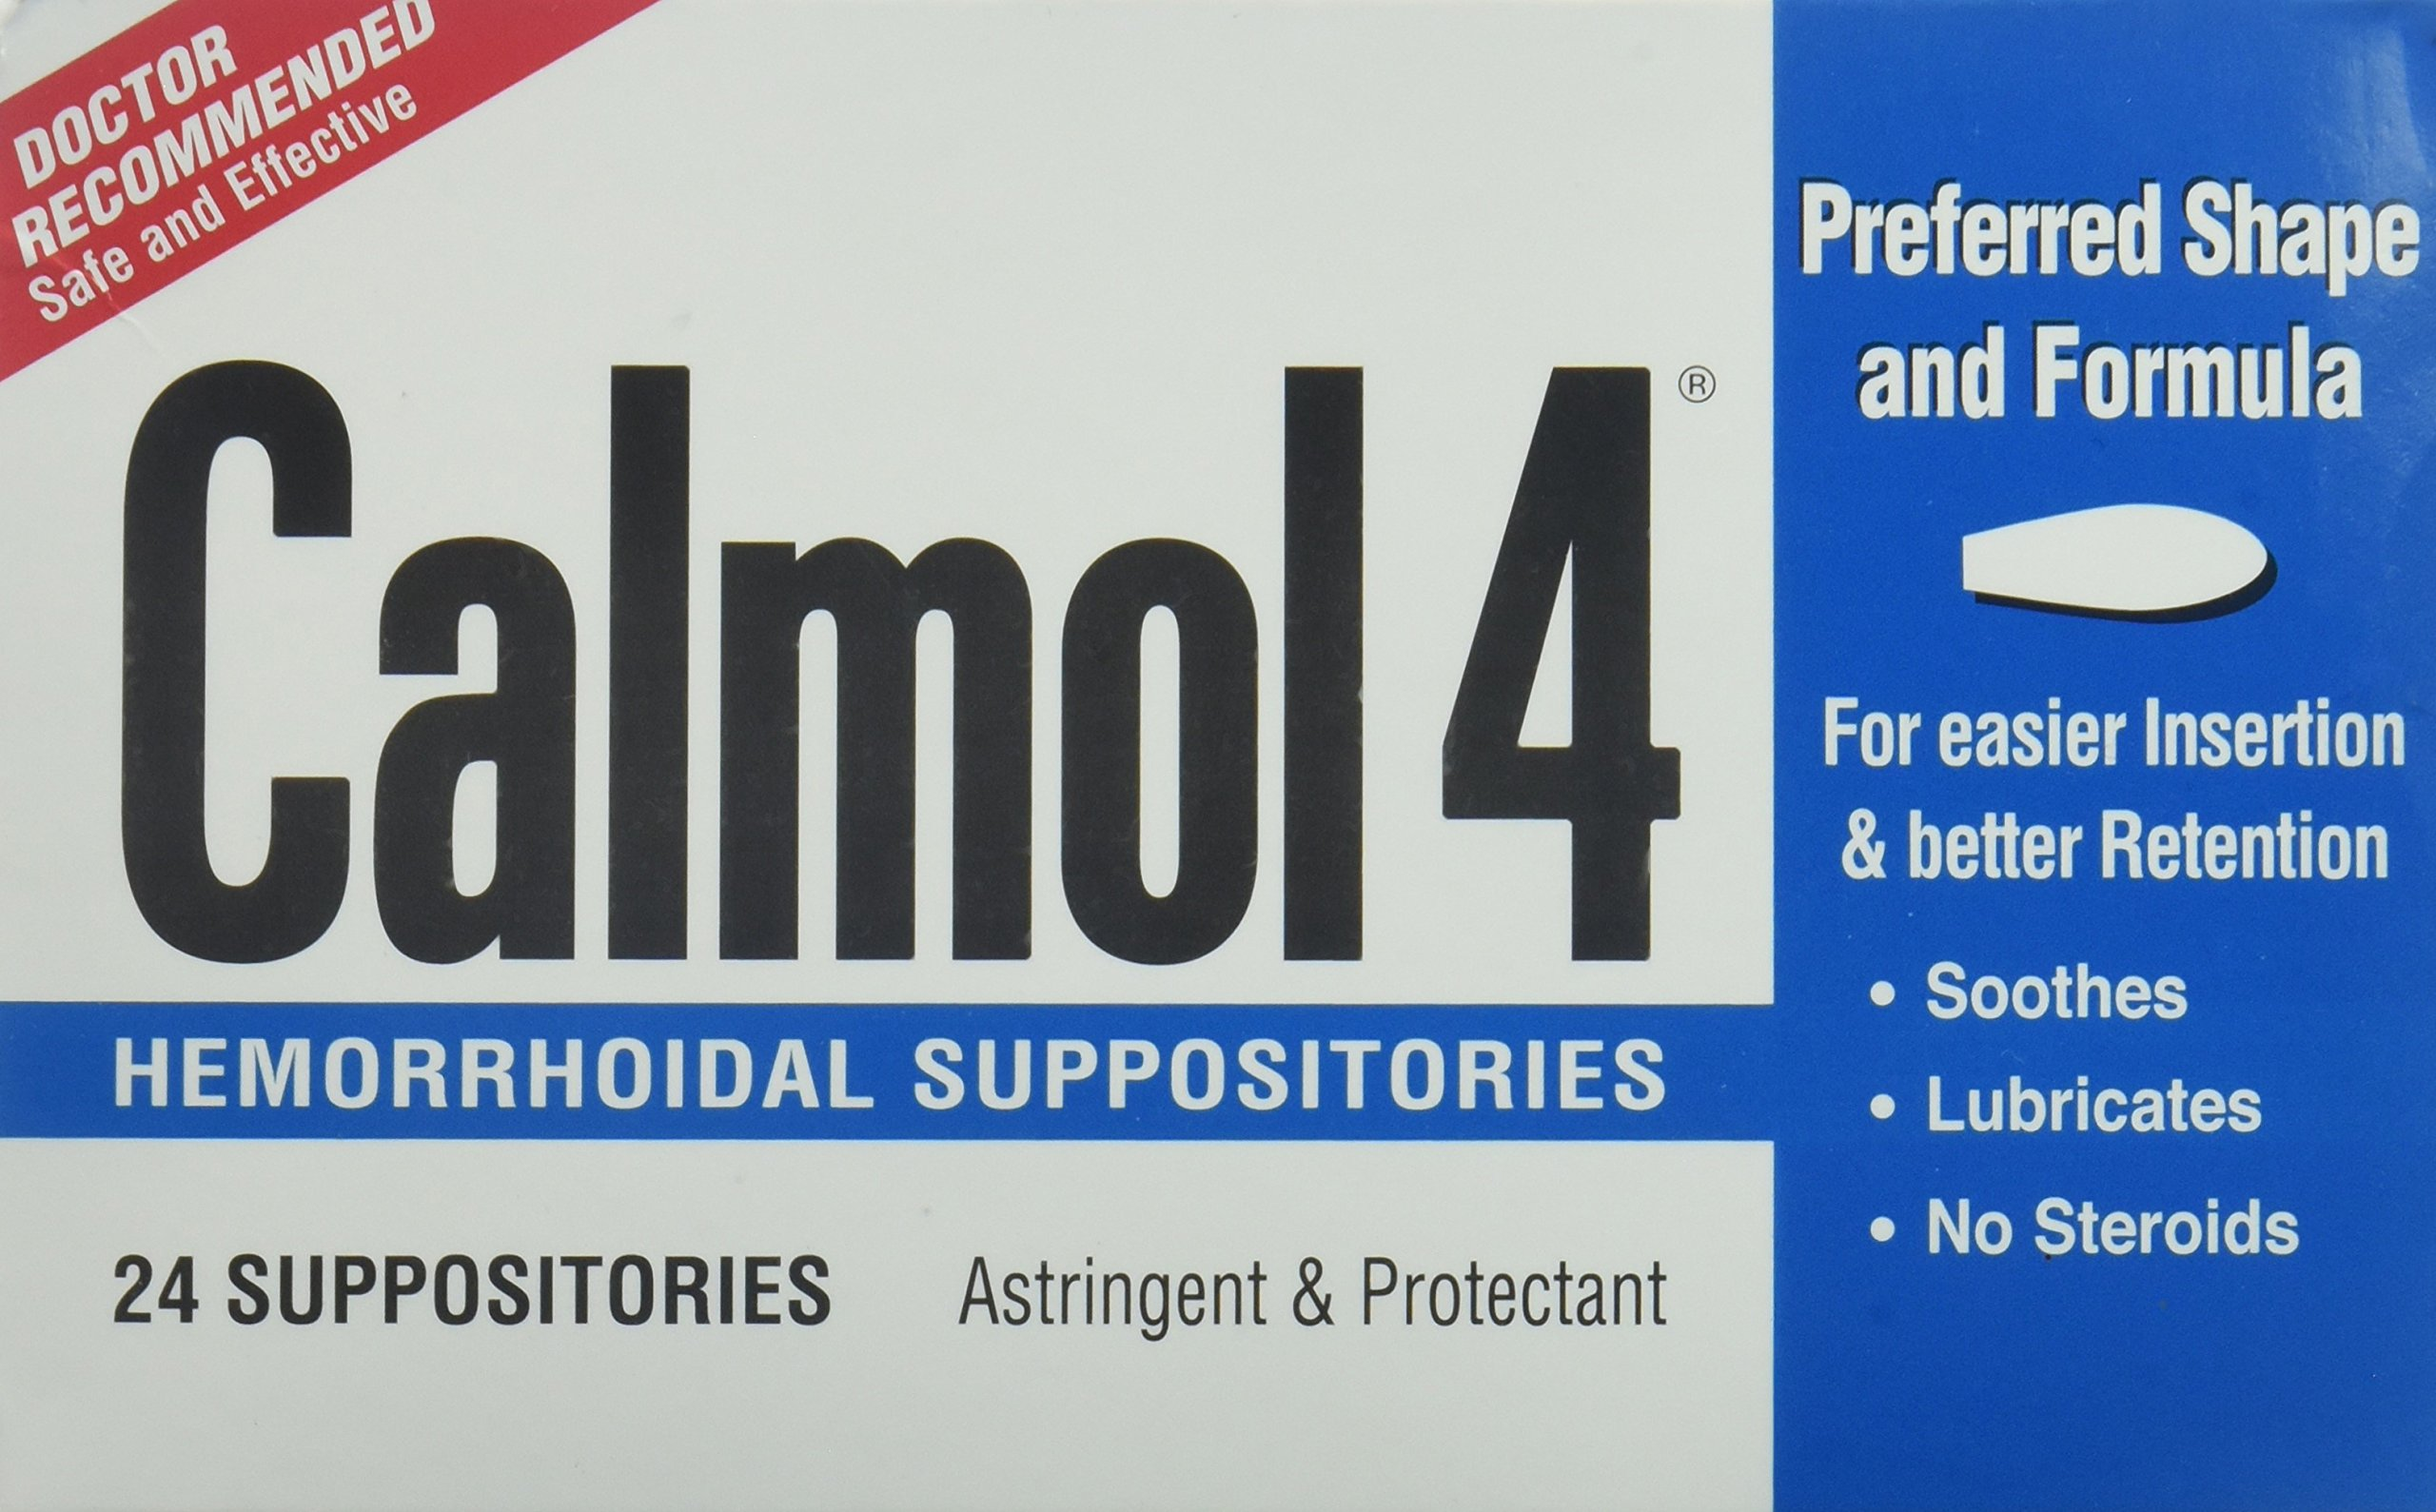 Calmol 4 Hemorrhoidal Suppositories, 3 Count by Calmol 4